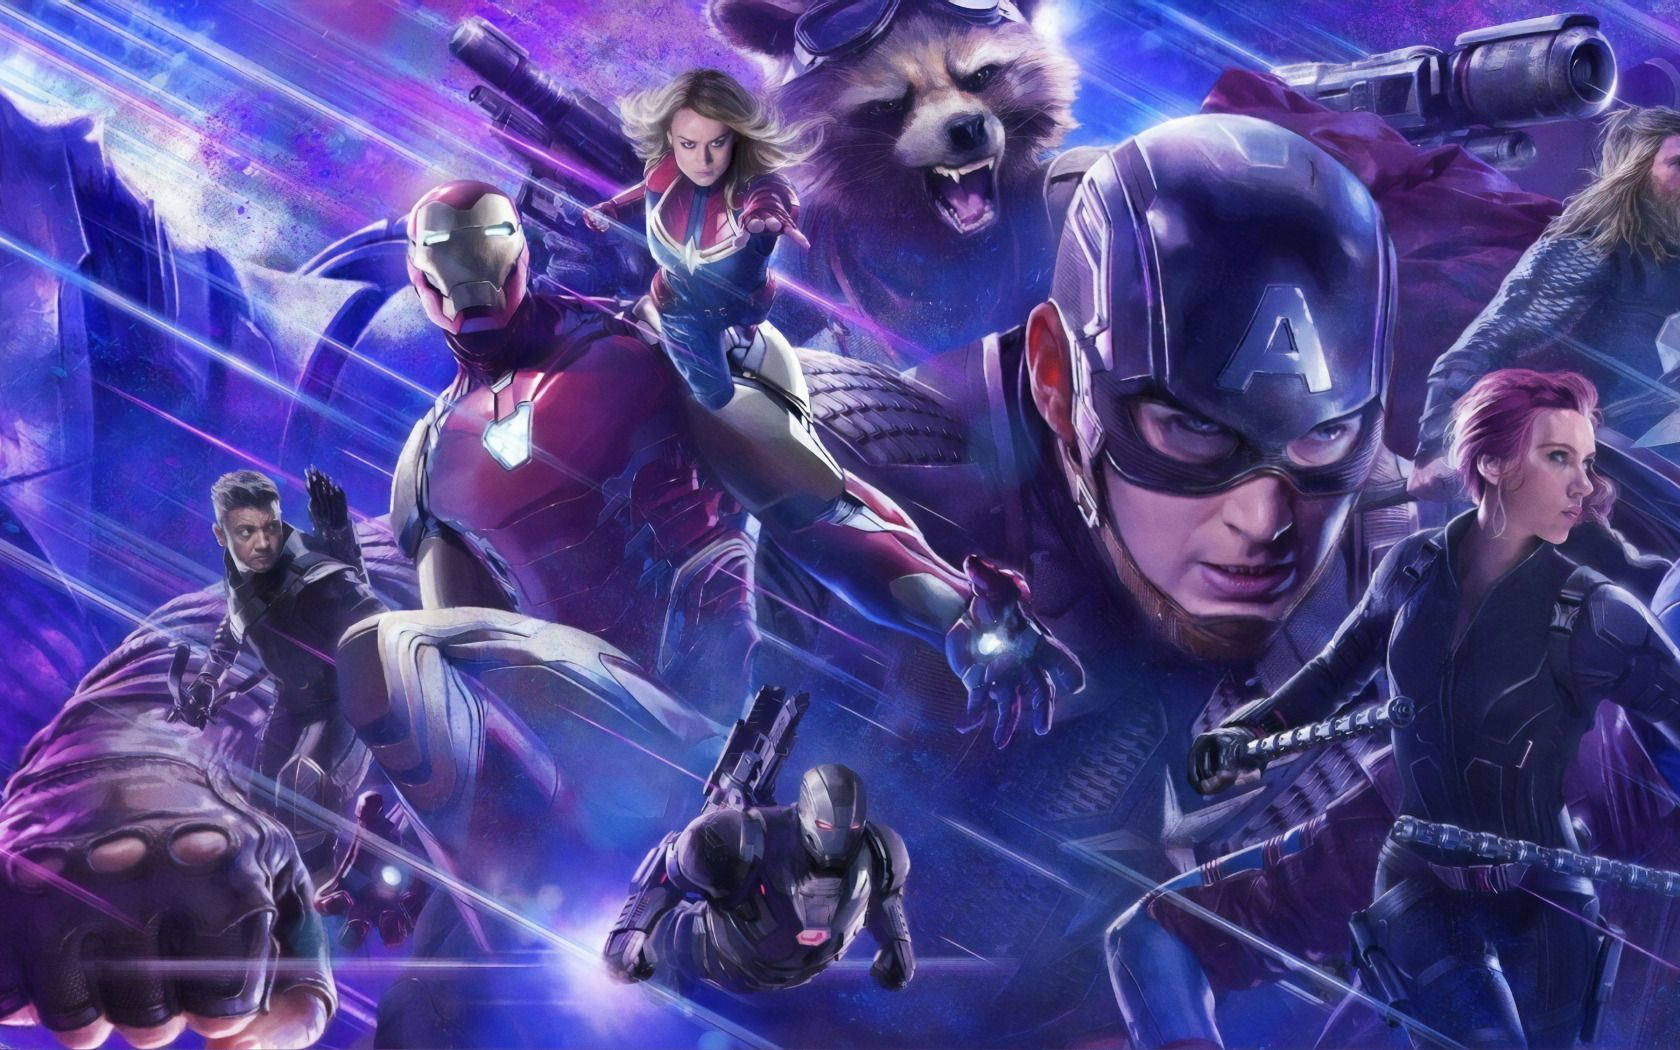 Avengers End Game Poster Die Racher Marvel Marvel Superhelden